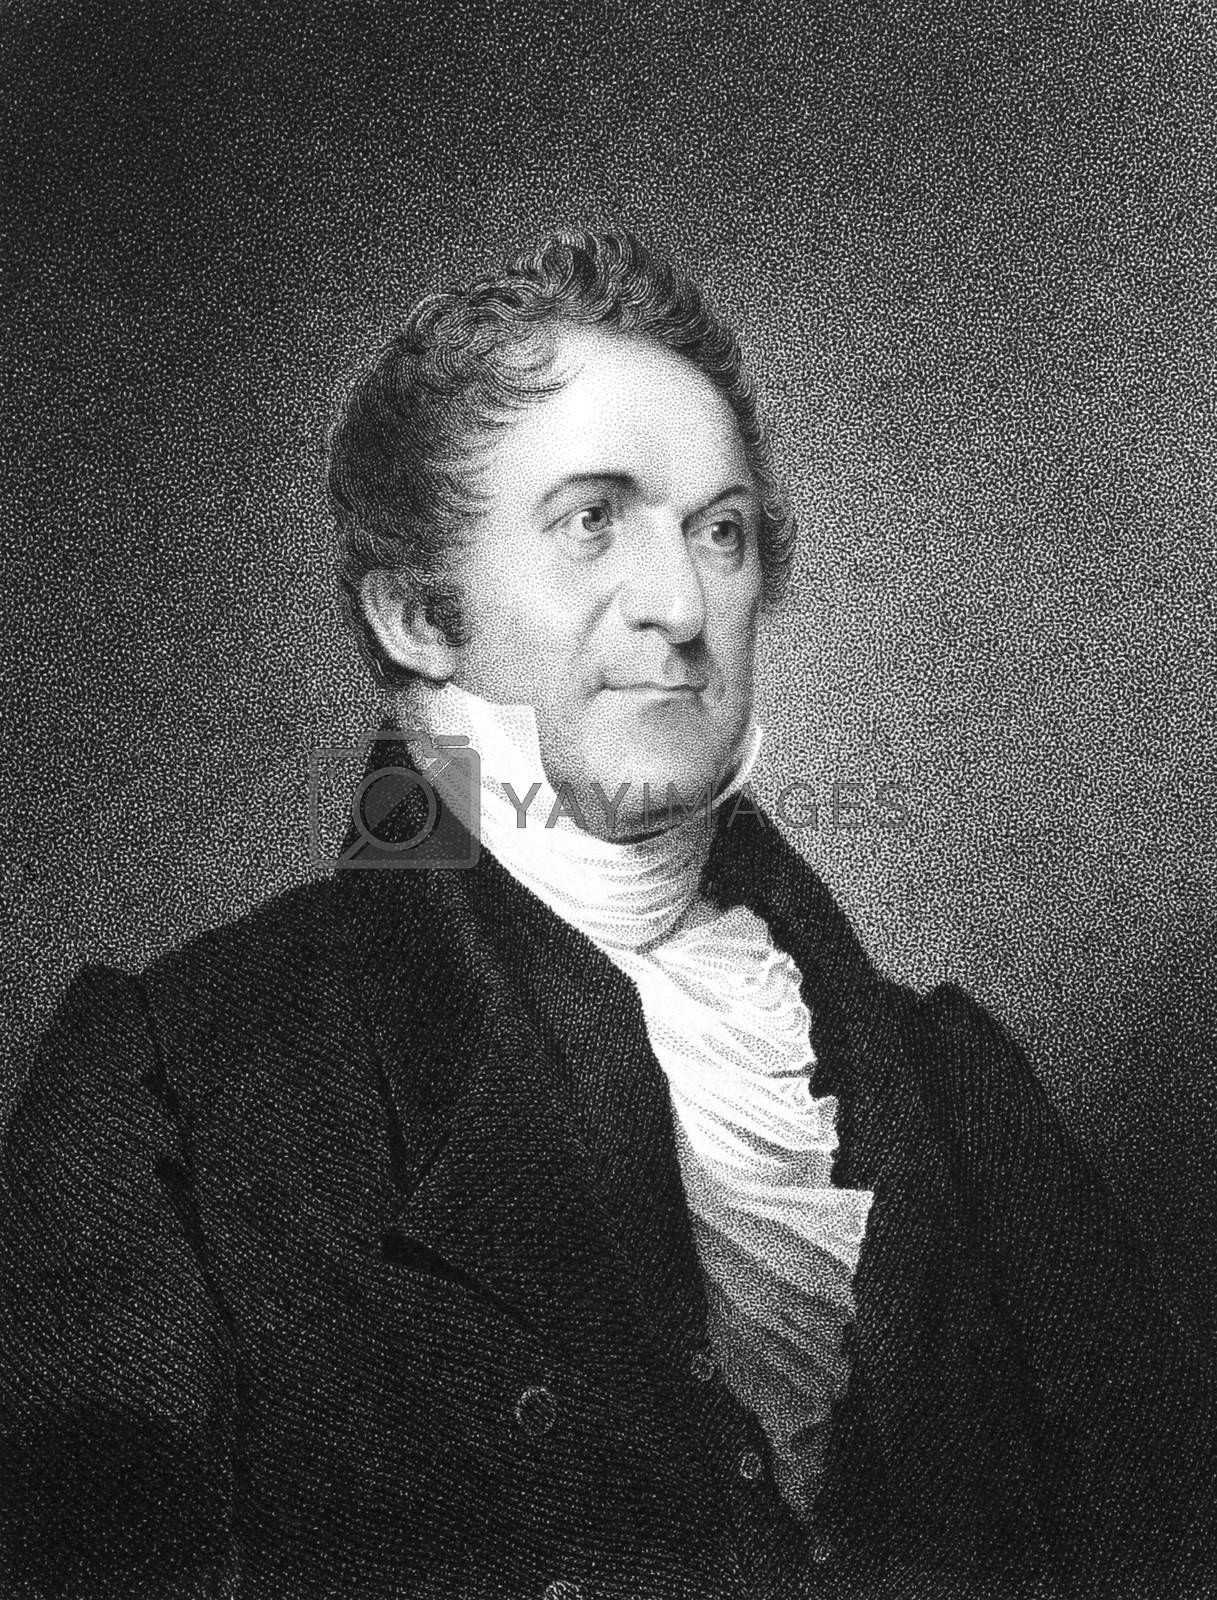 William Wirt (1772-1834) on engraving from 1834.  American author and statesman. Engraved by J.B Longacre and published in ''National Portrait Gallery of Distinguished Americans'',USA,1834.